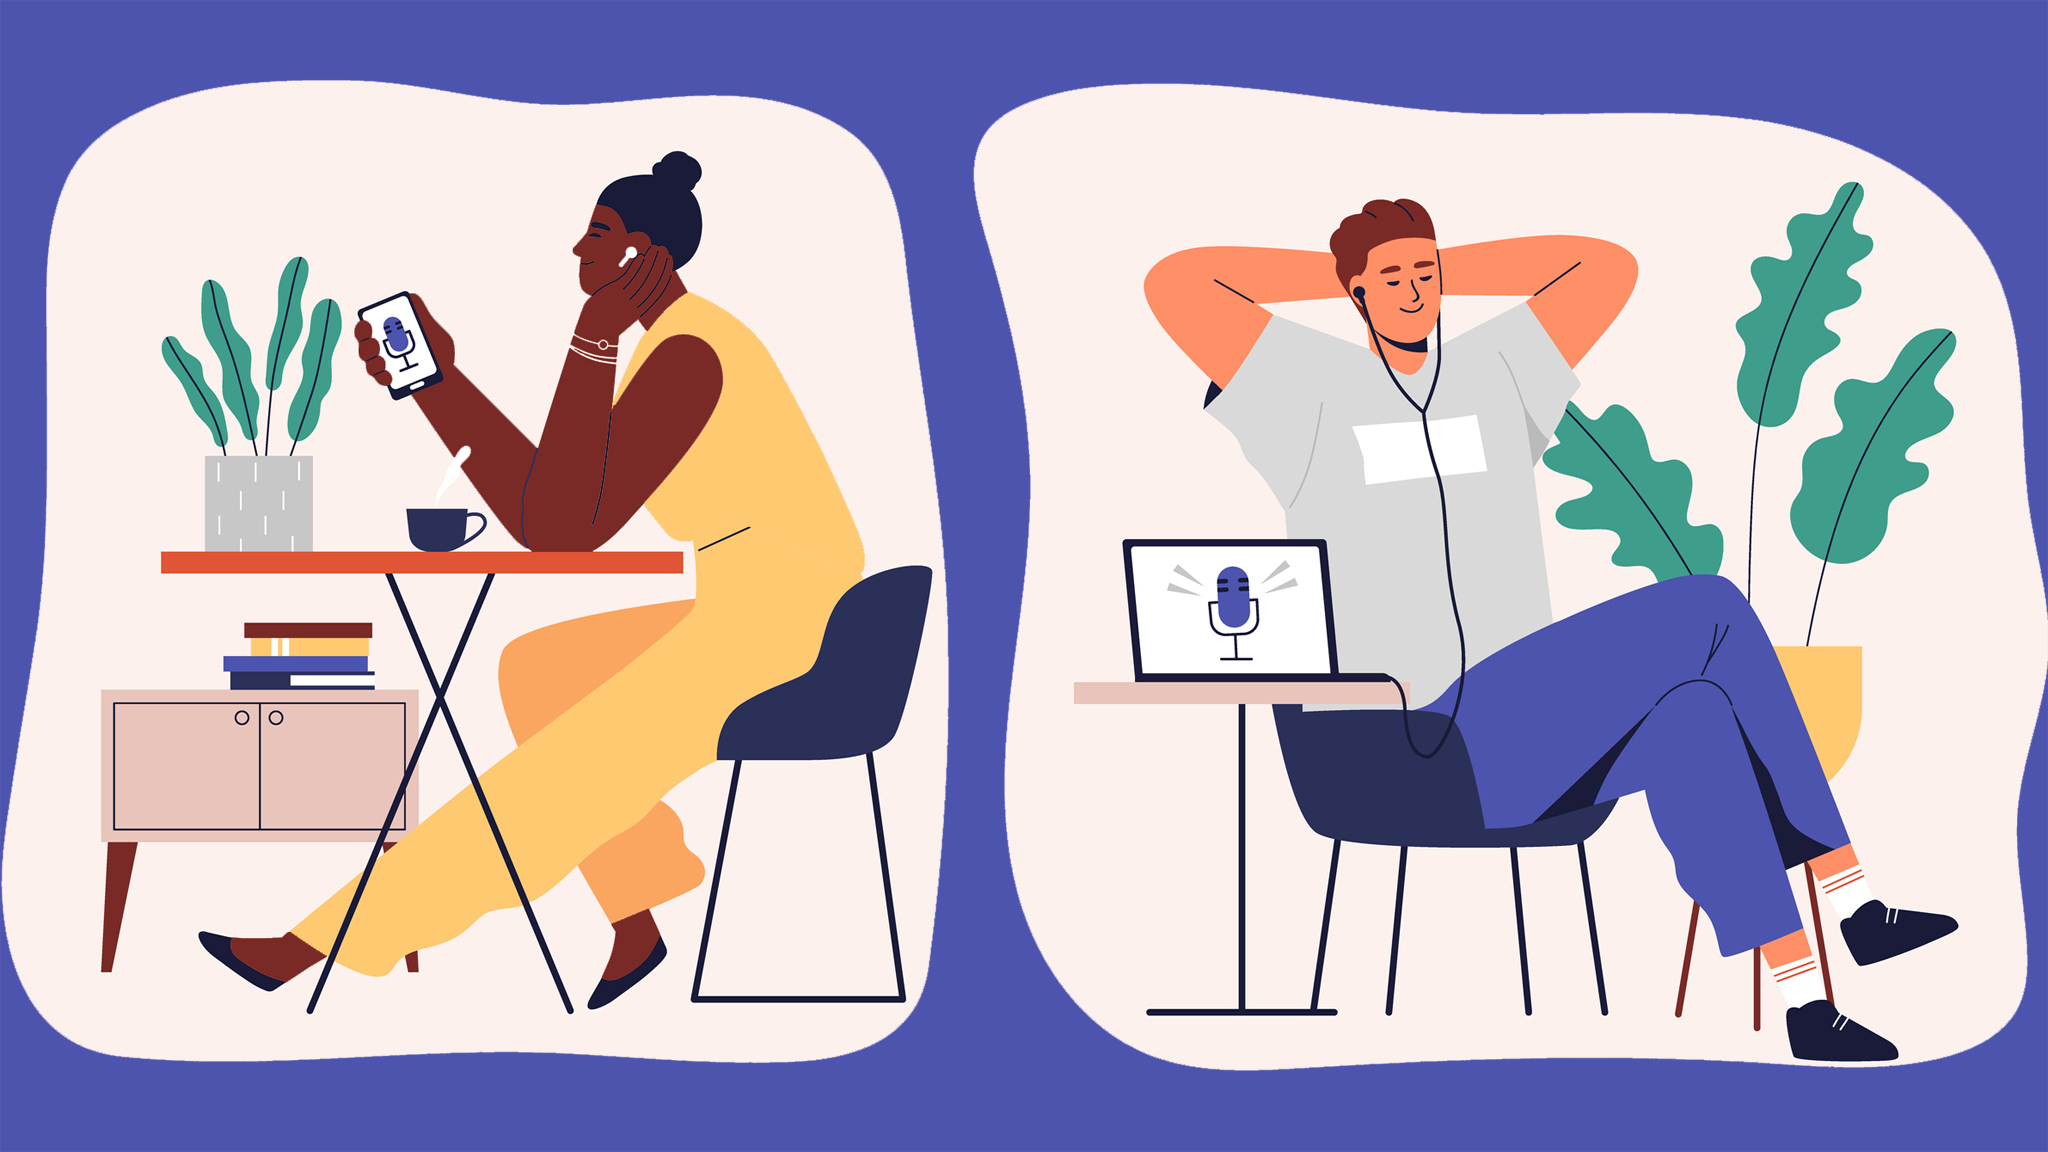 Illustration of two people sitting down listening to podcasts